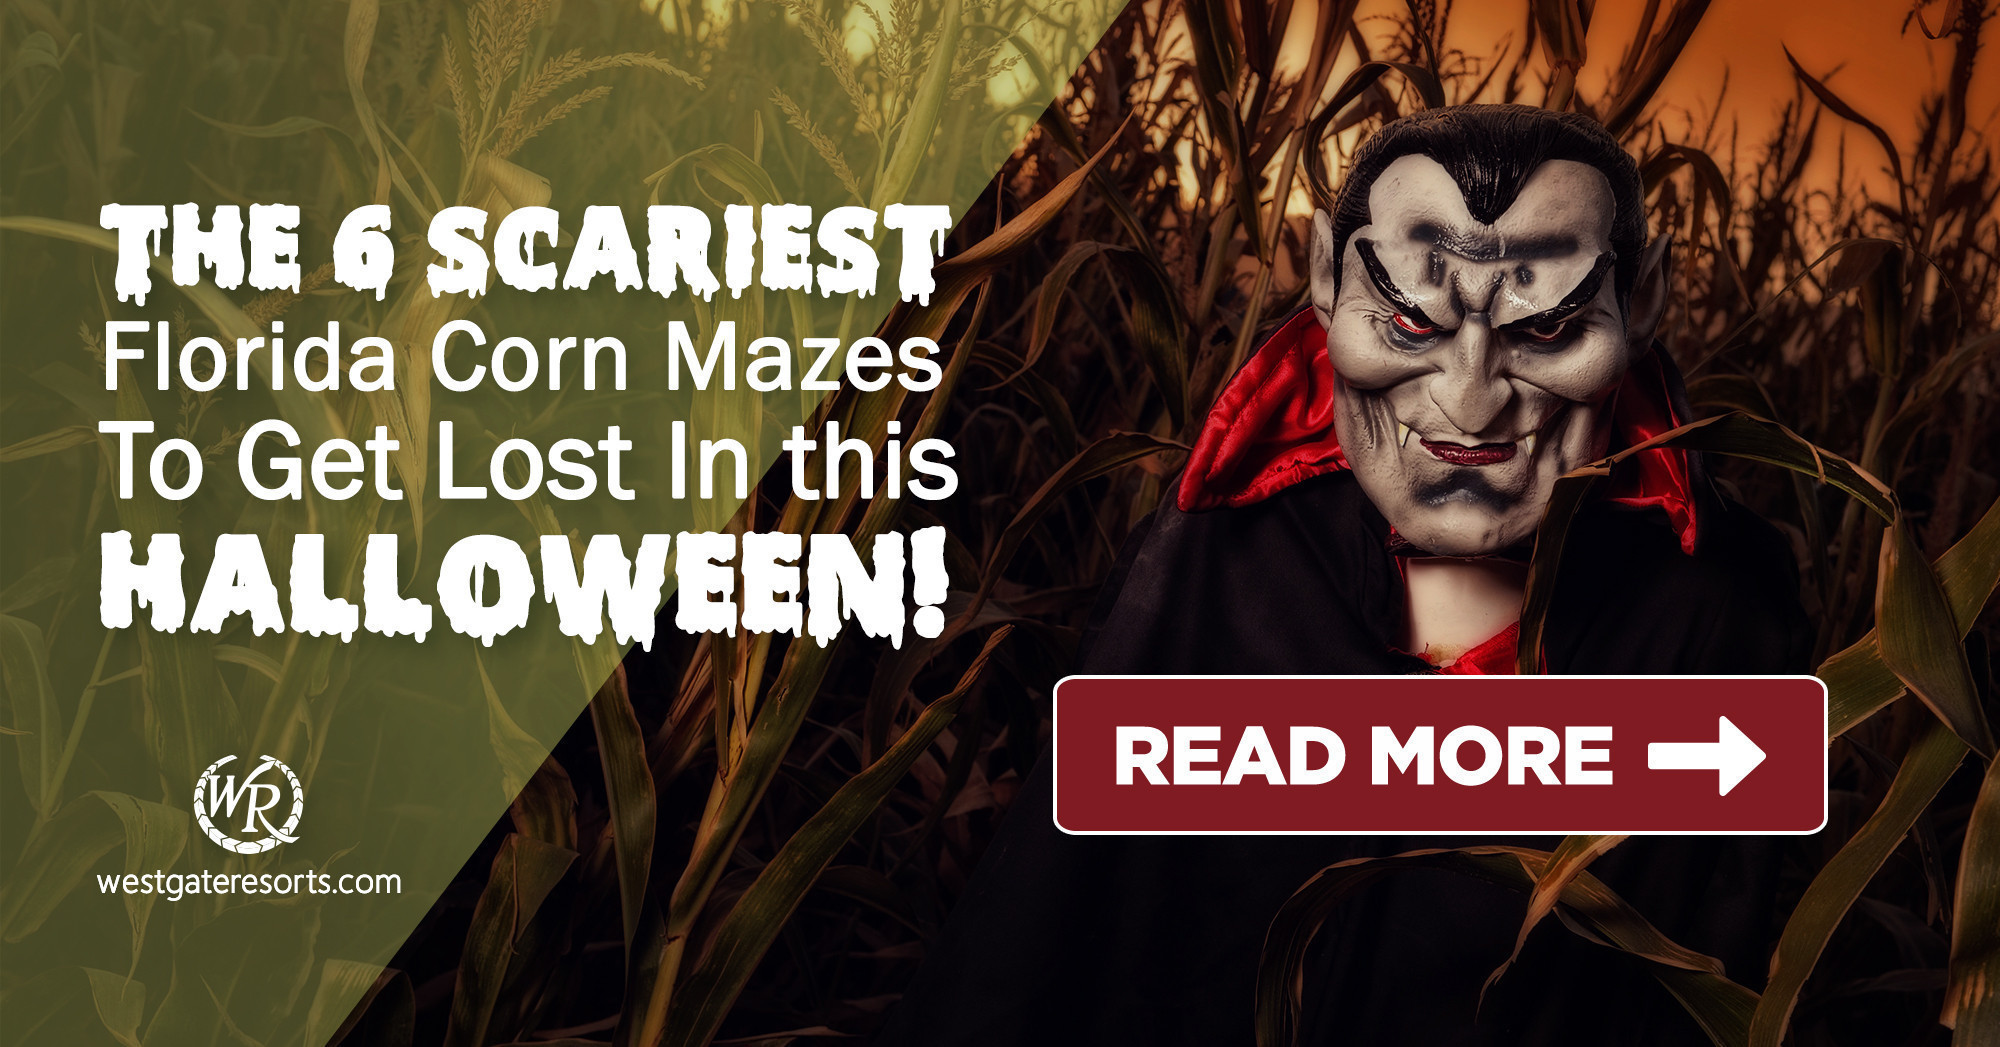 The 6 Scariest Florida Corn Mazes To Get Lost In This Halloween! | Florida Halloween Activities | Westgate Resorts